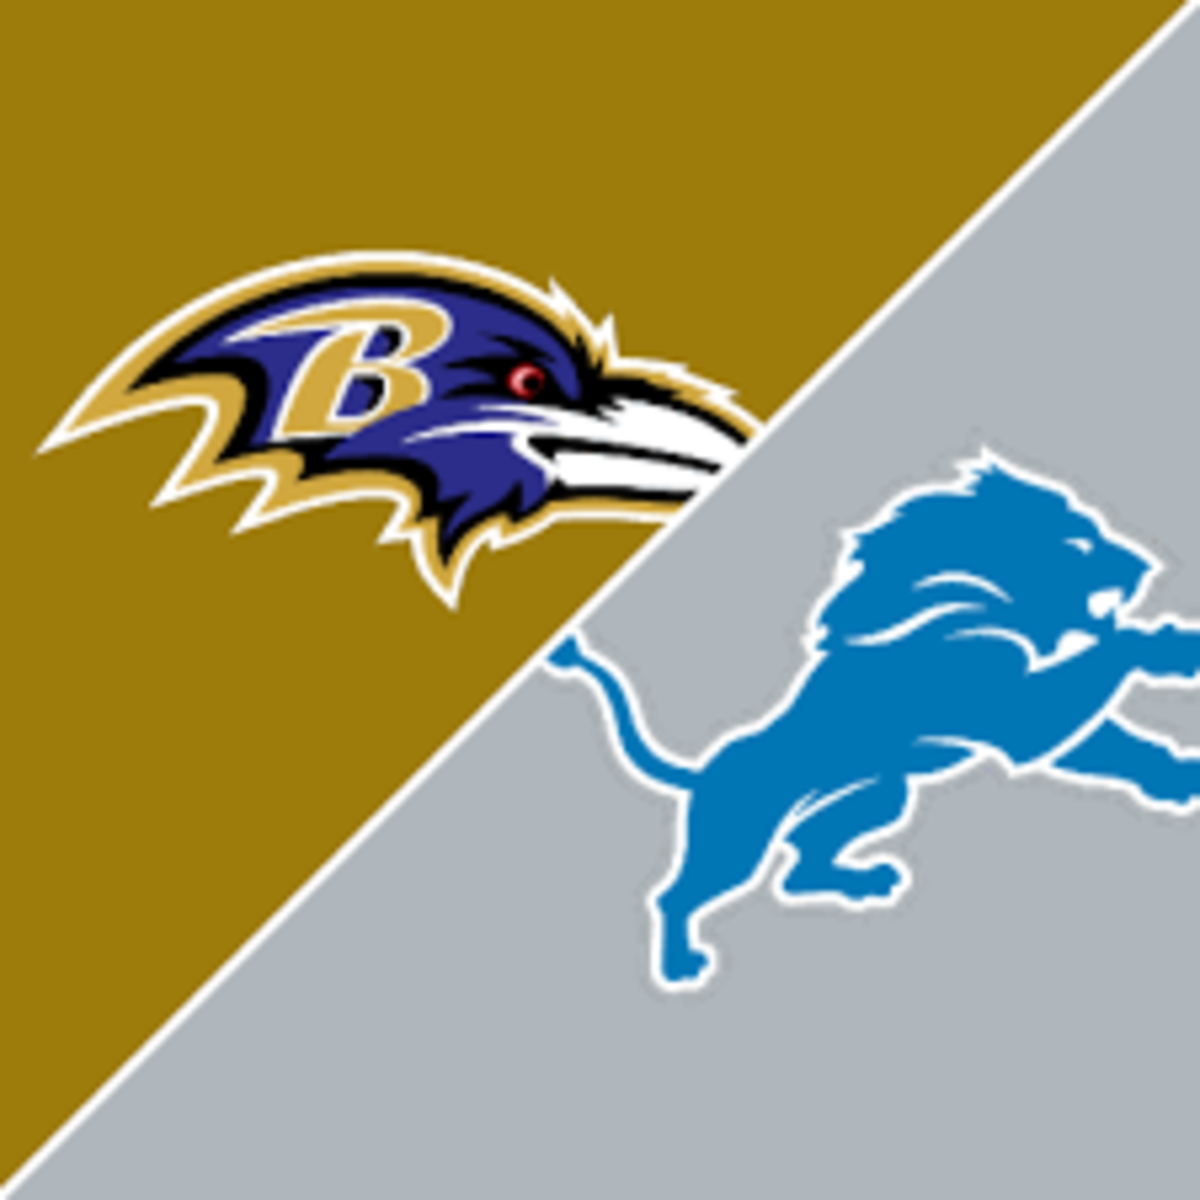 Justin Tucker hits 66 yard FG to win game and bad luck Lions.